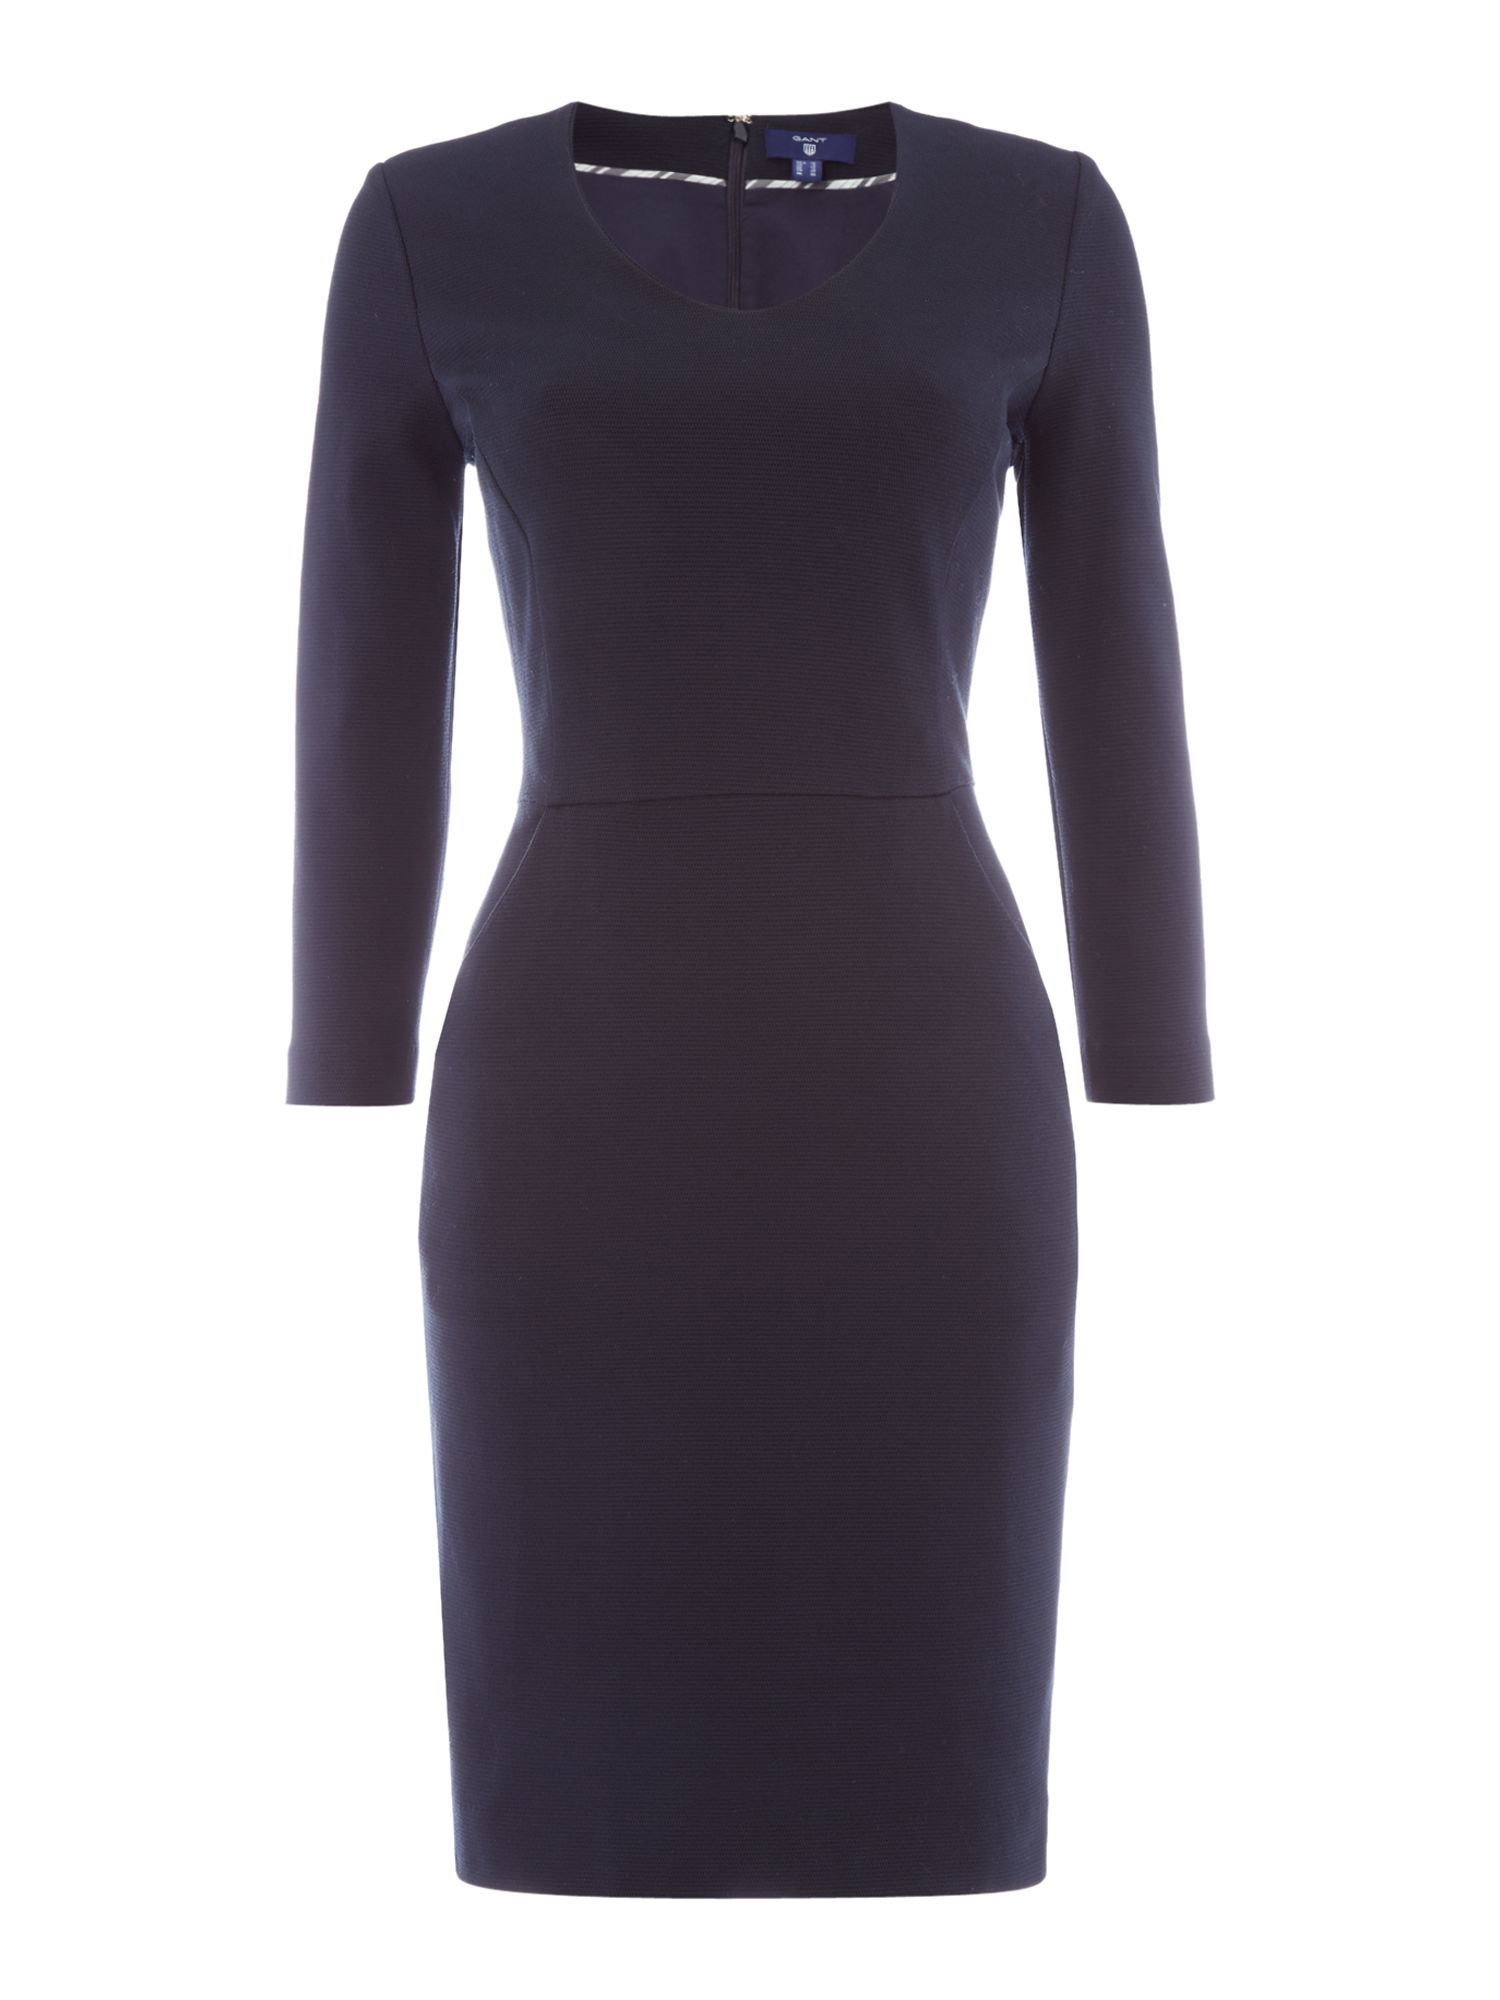 Gant Pique Stretch Tailored Dress With 3/4 Sleeves, Blue